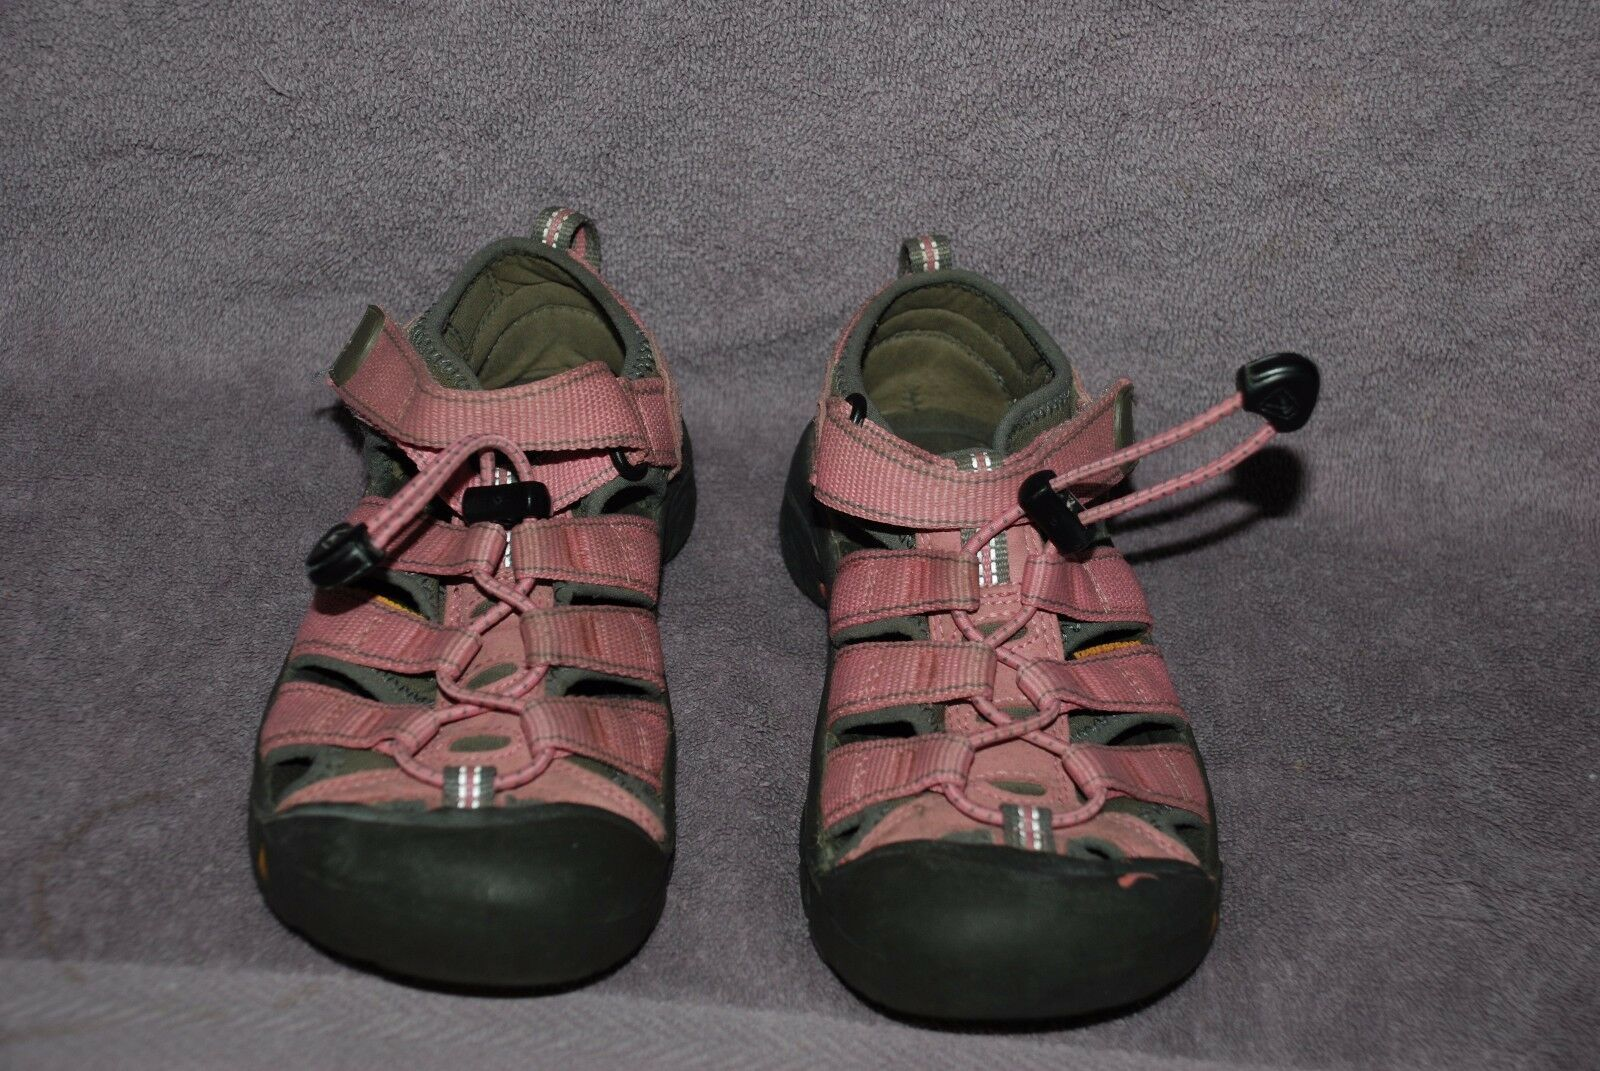 Keen H2 Waterproof Sandals Light Pink Youth Size 1 GUC